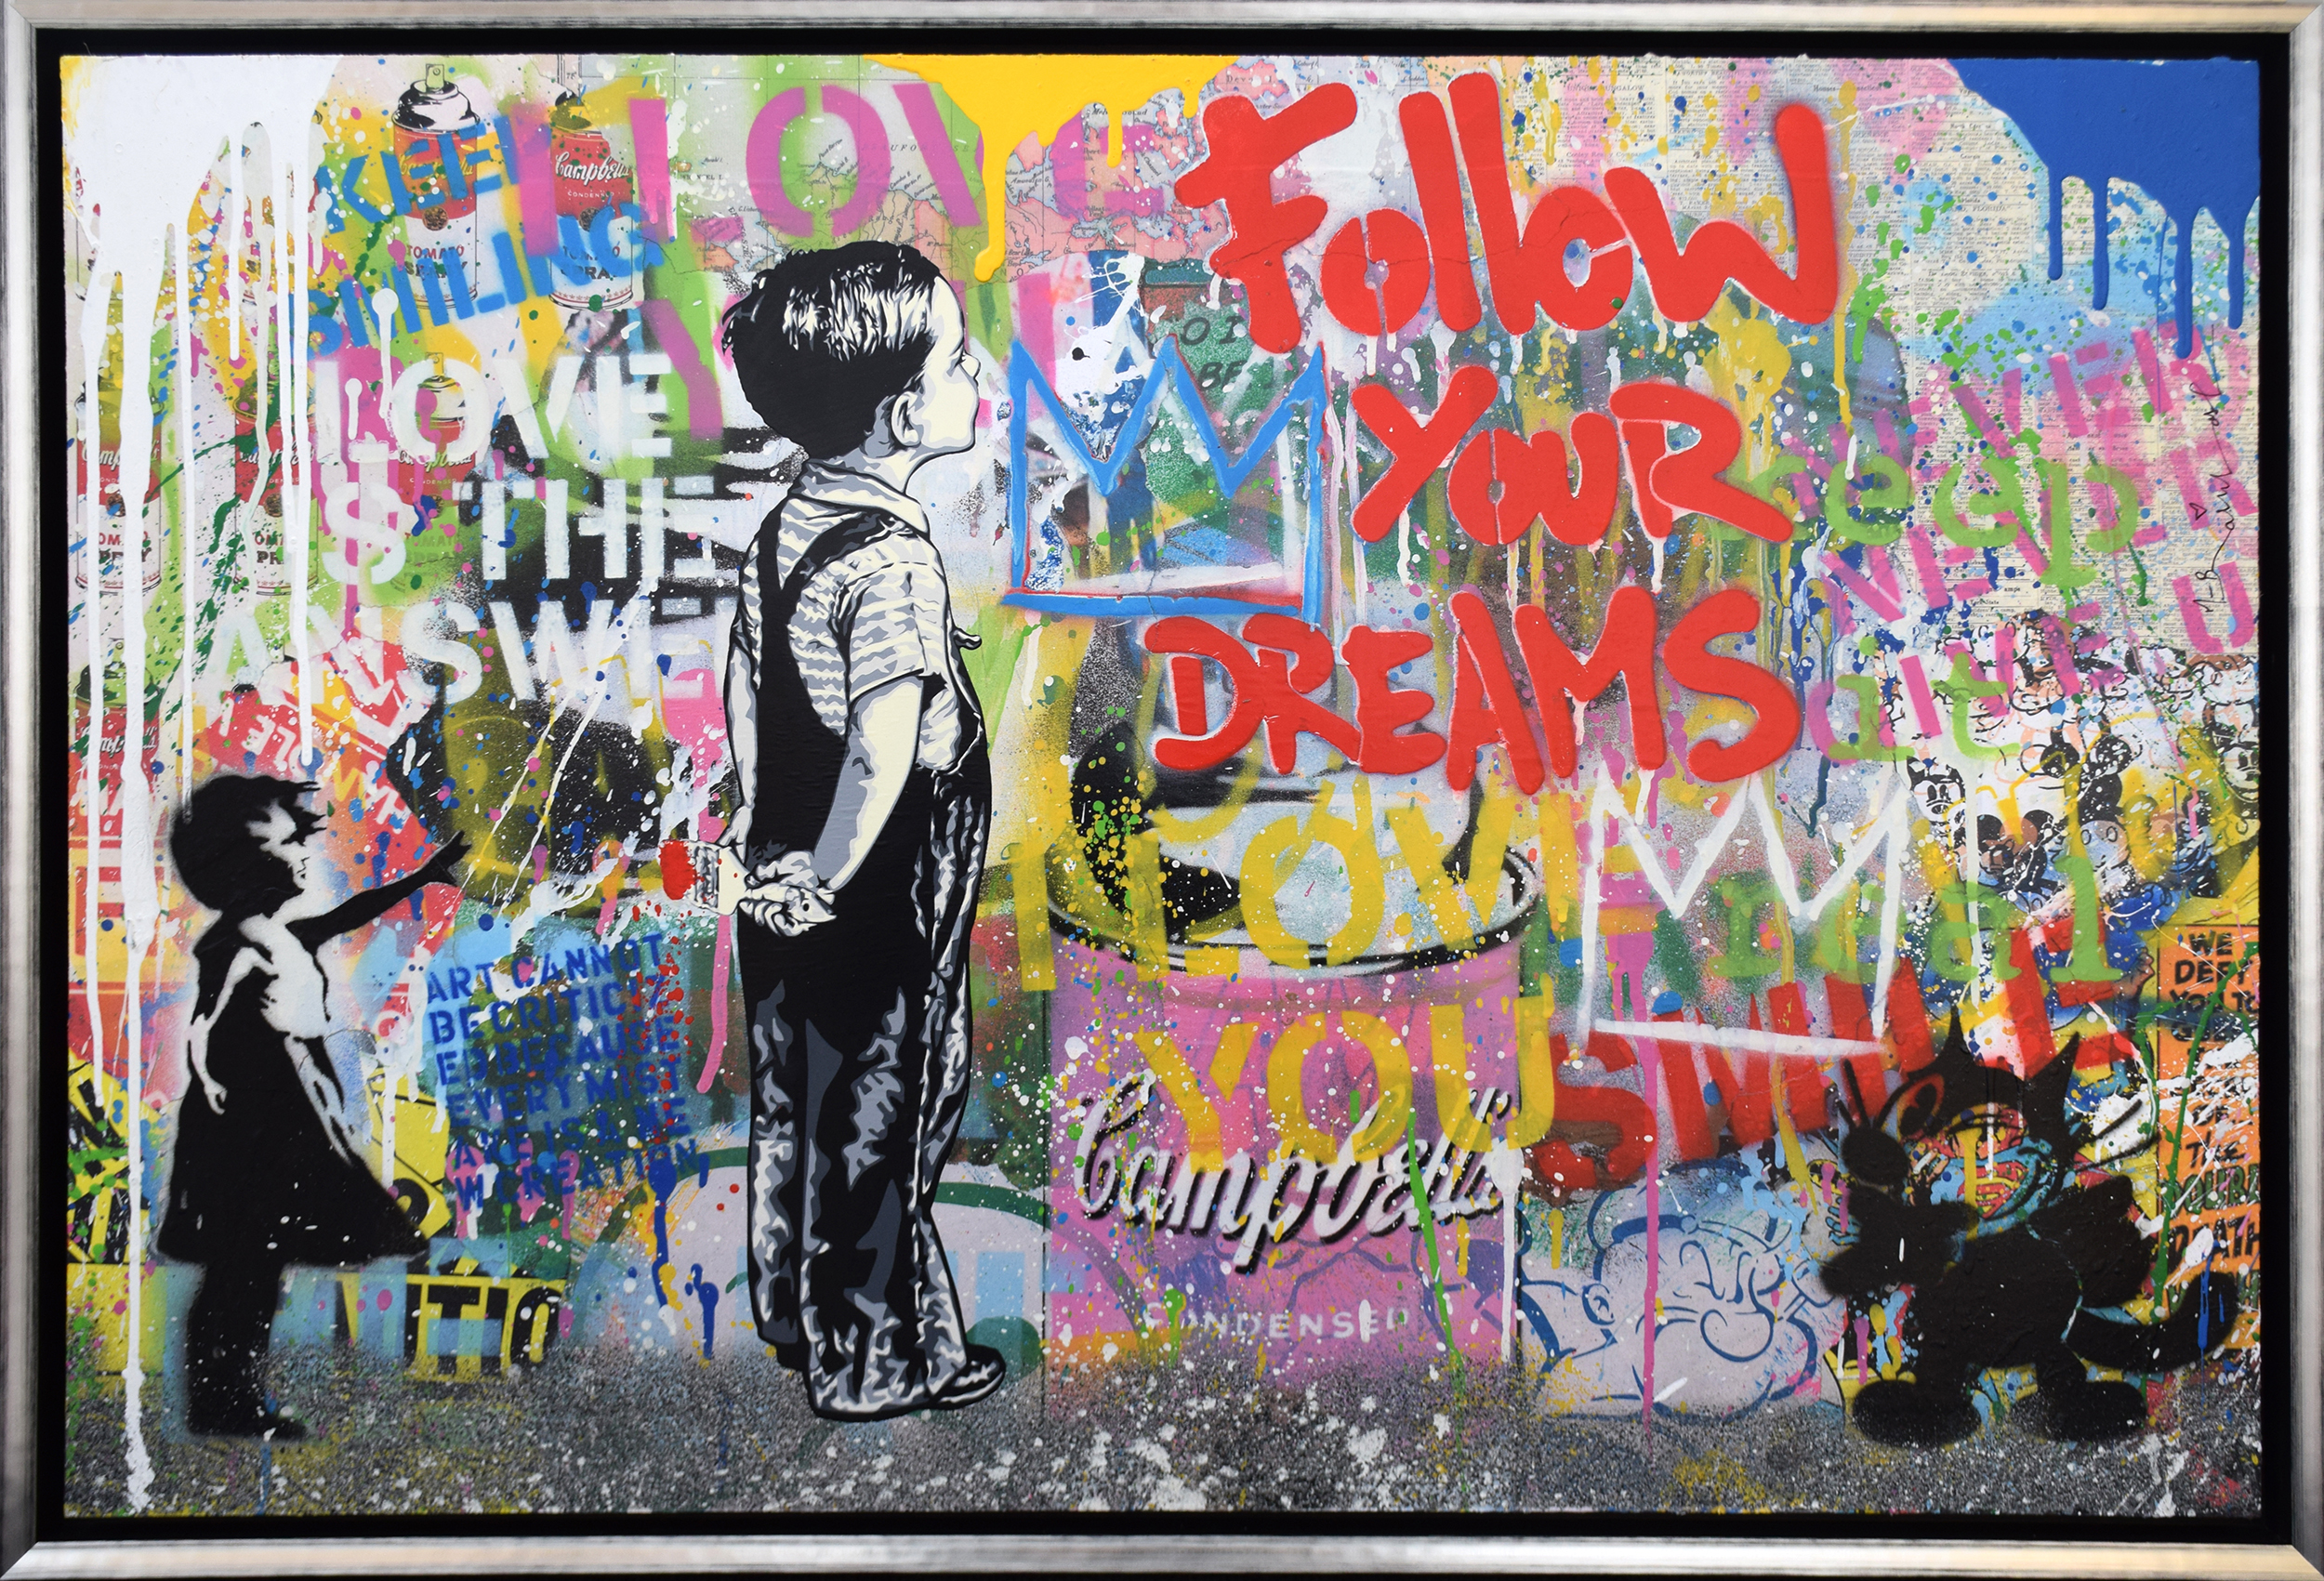 Mr. Brainwash - With all my Love (Cat and Ballon Girl) , 9003-012-164